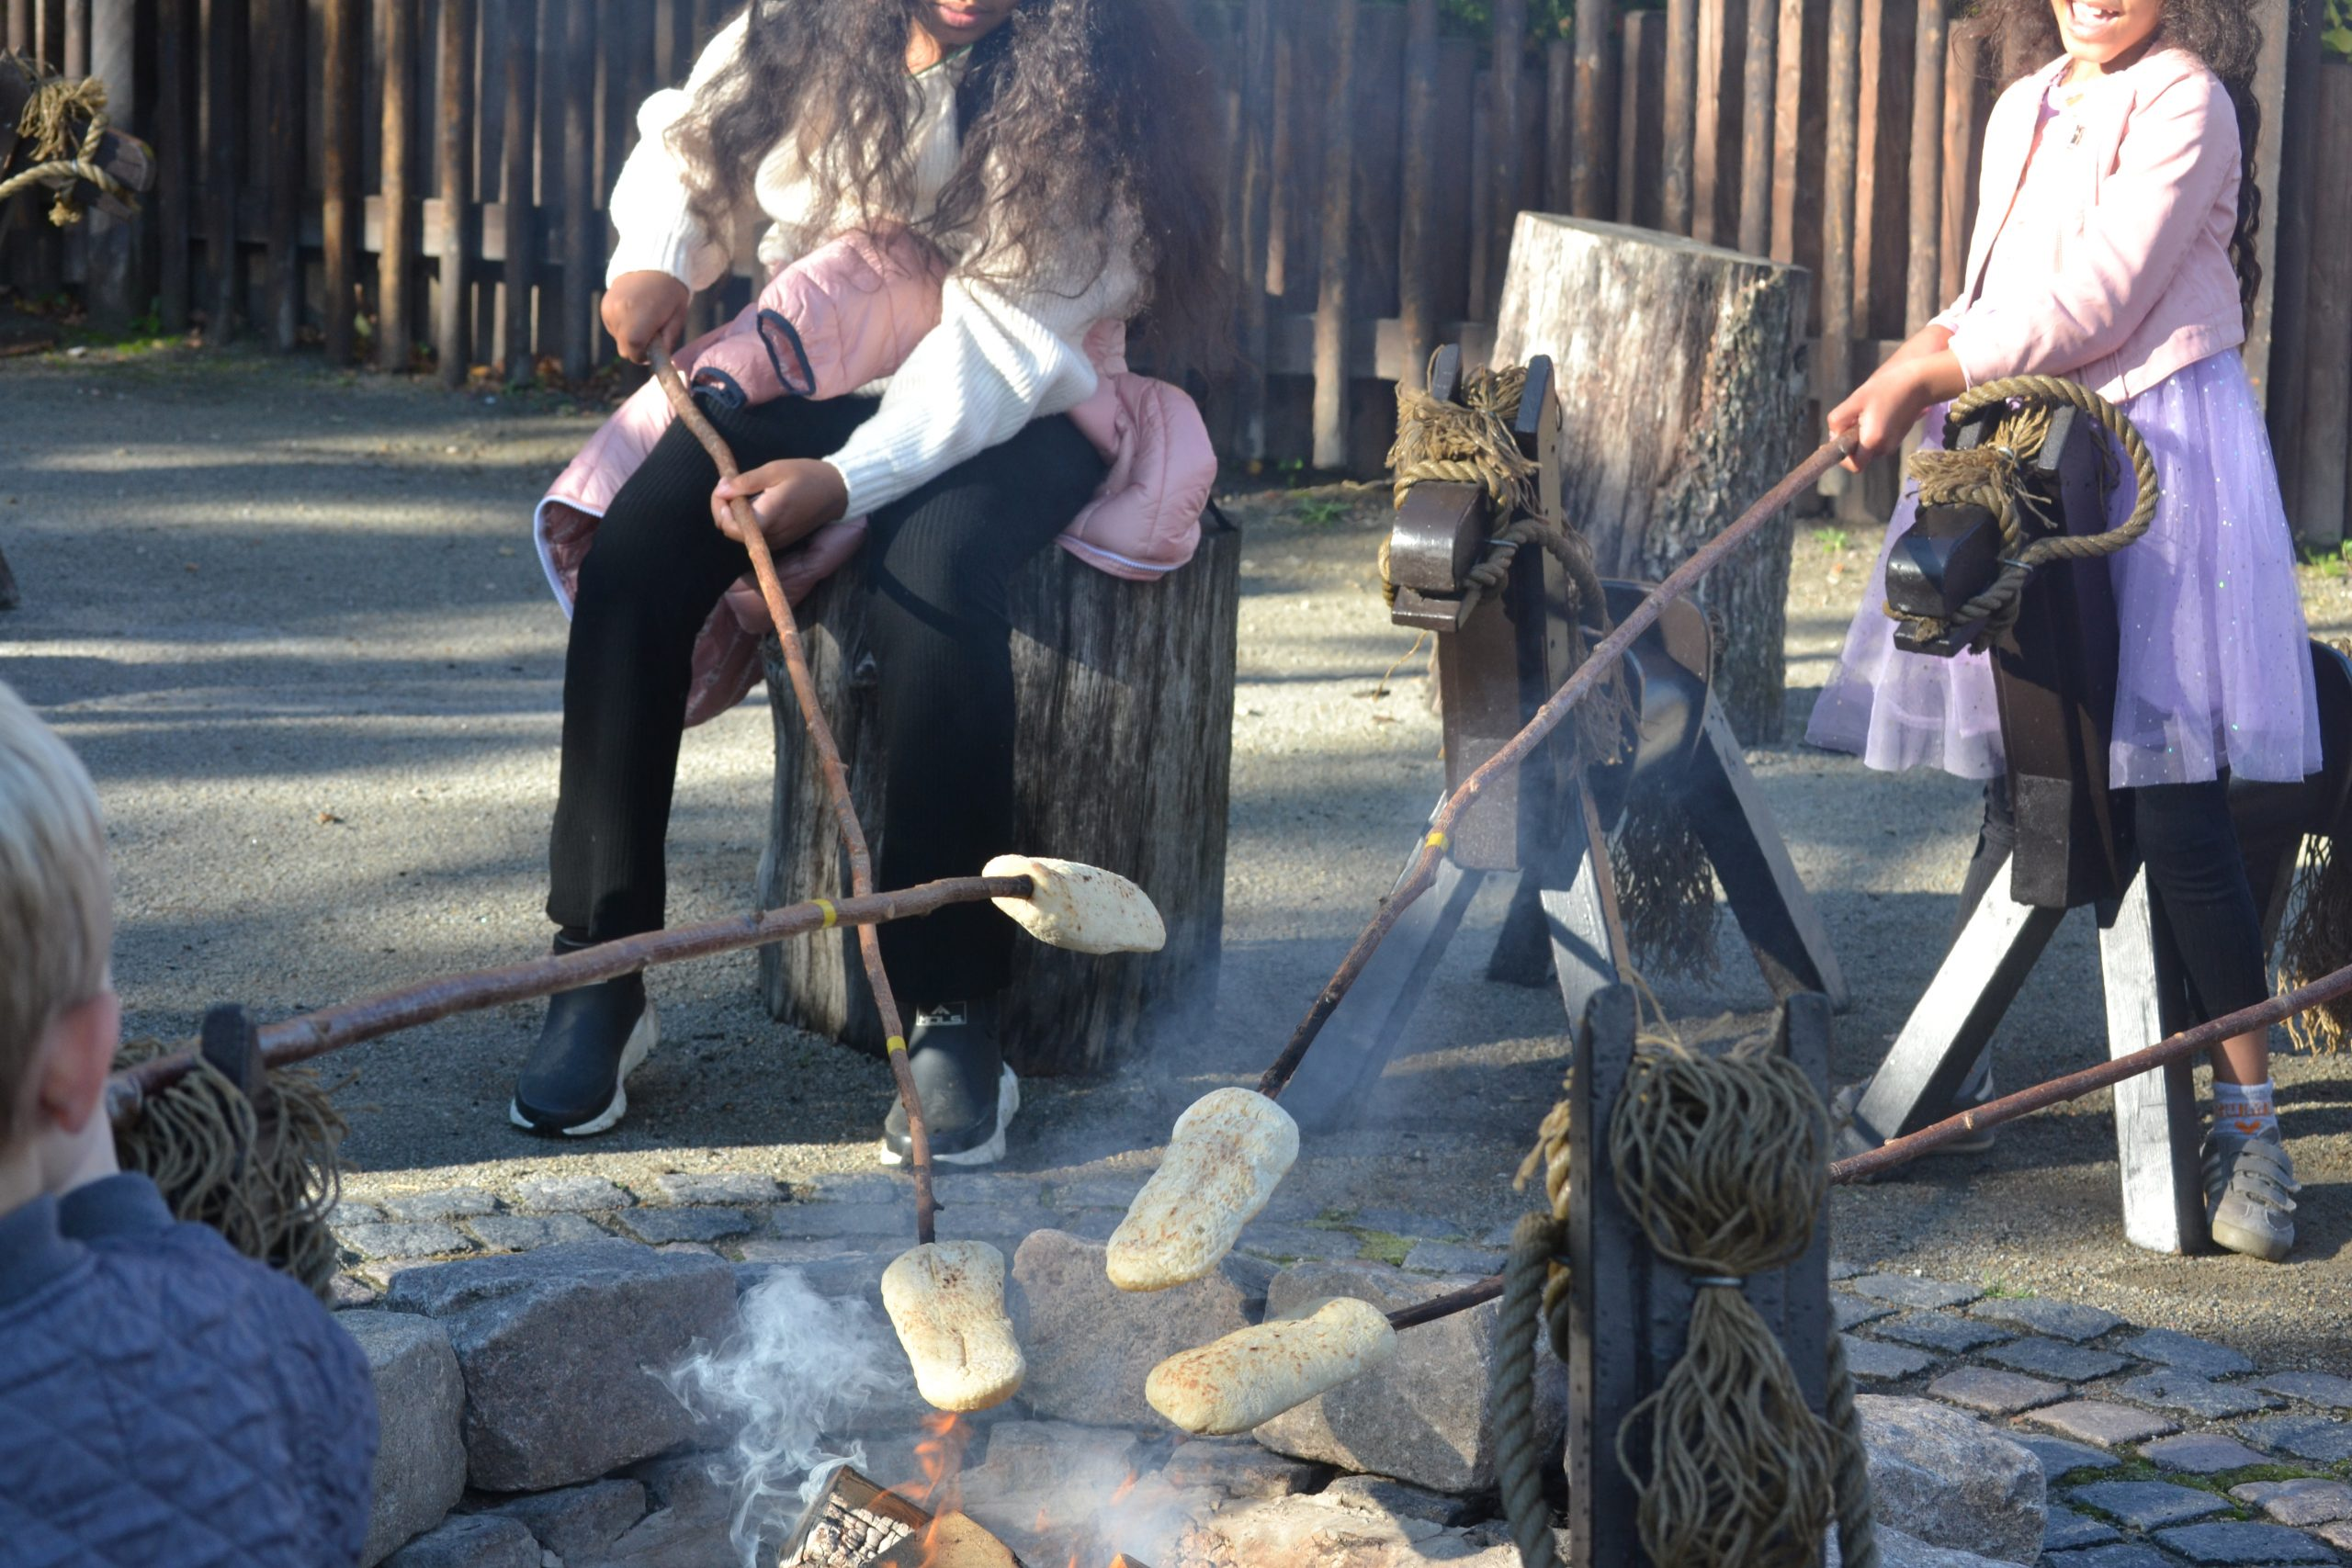 must visit spot at legoland: Indian Trading Post, where you can roast some snorbrød!